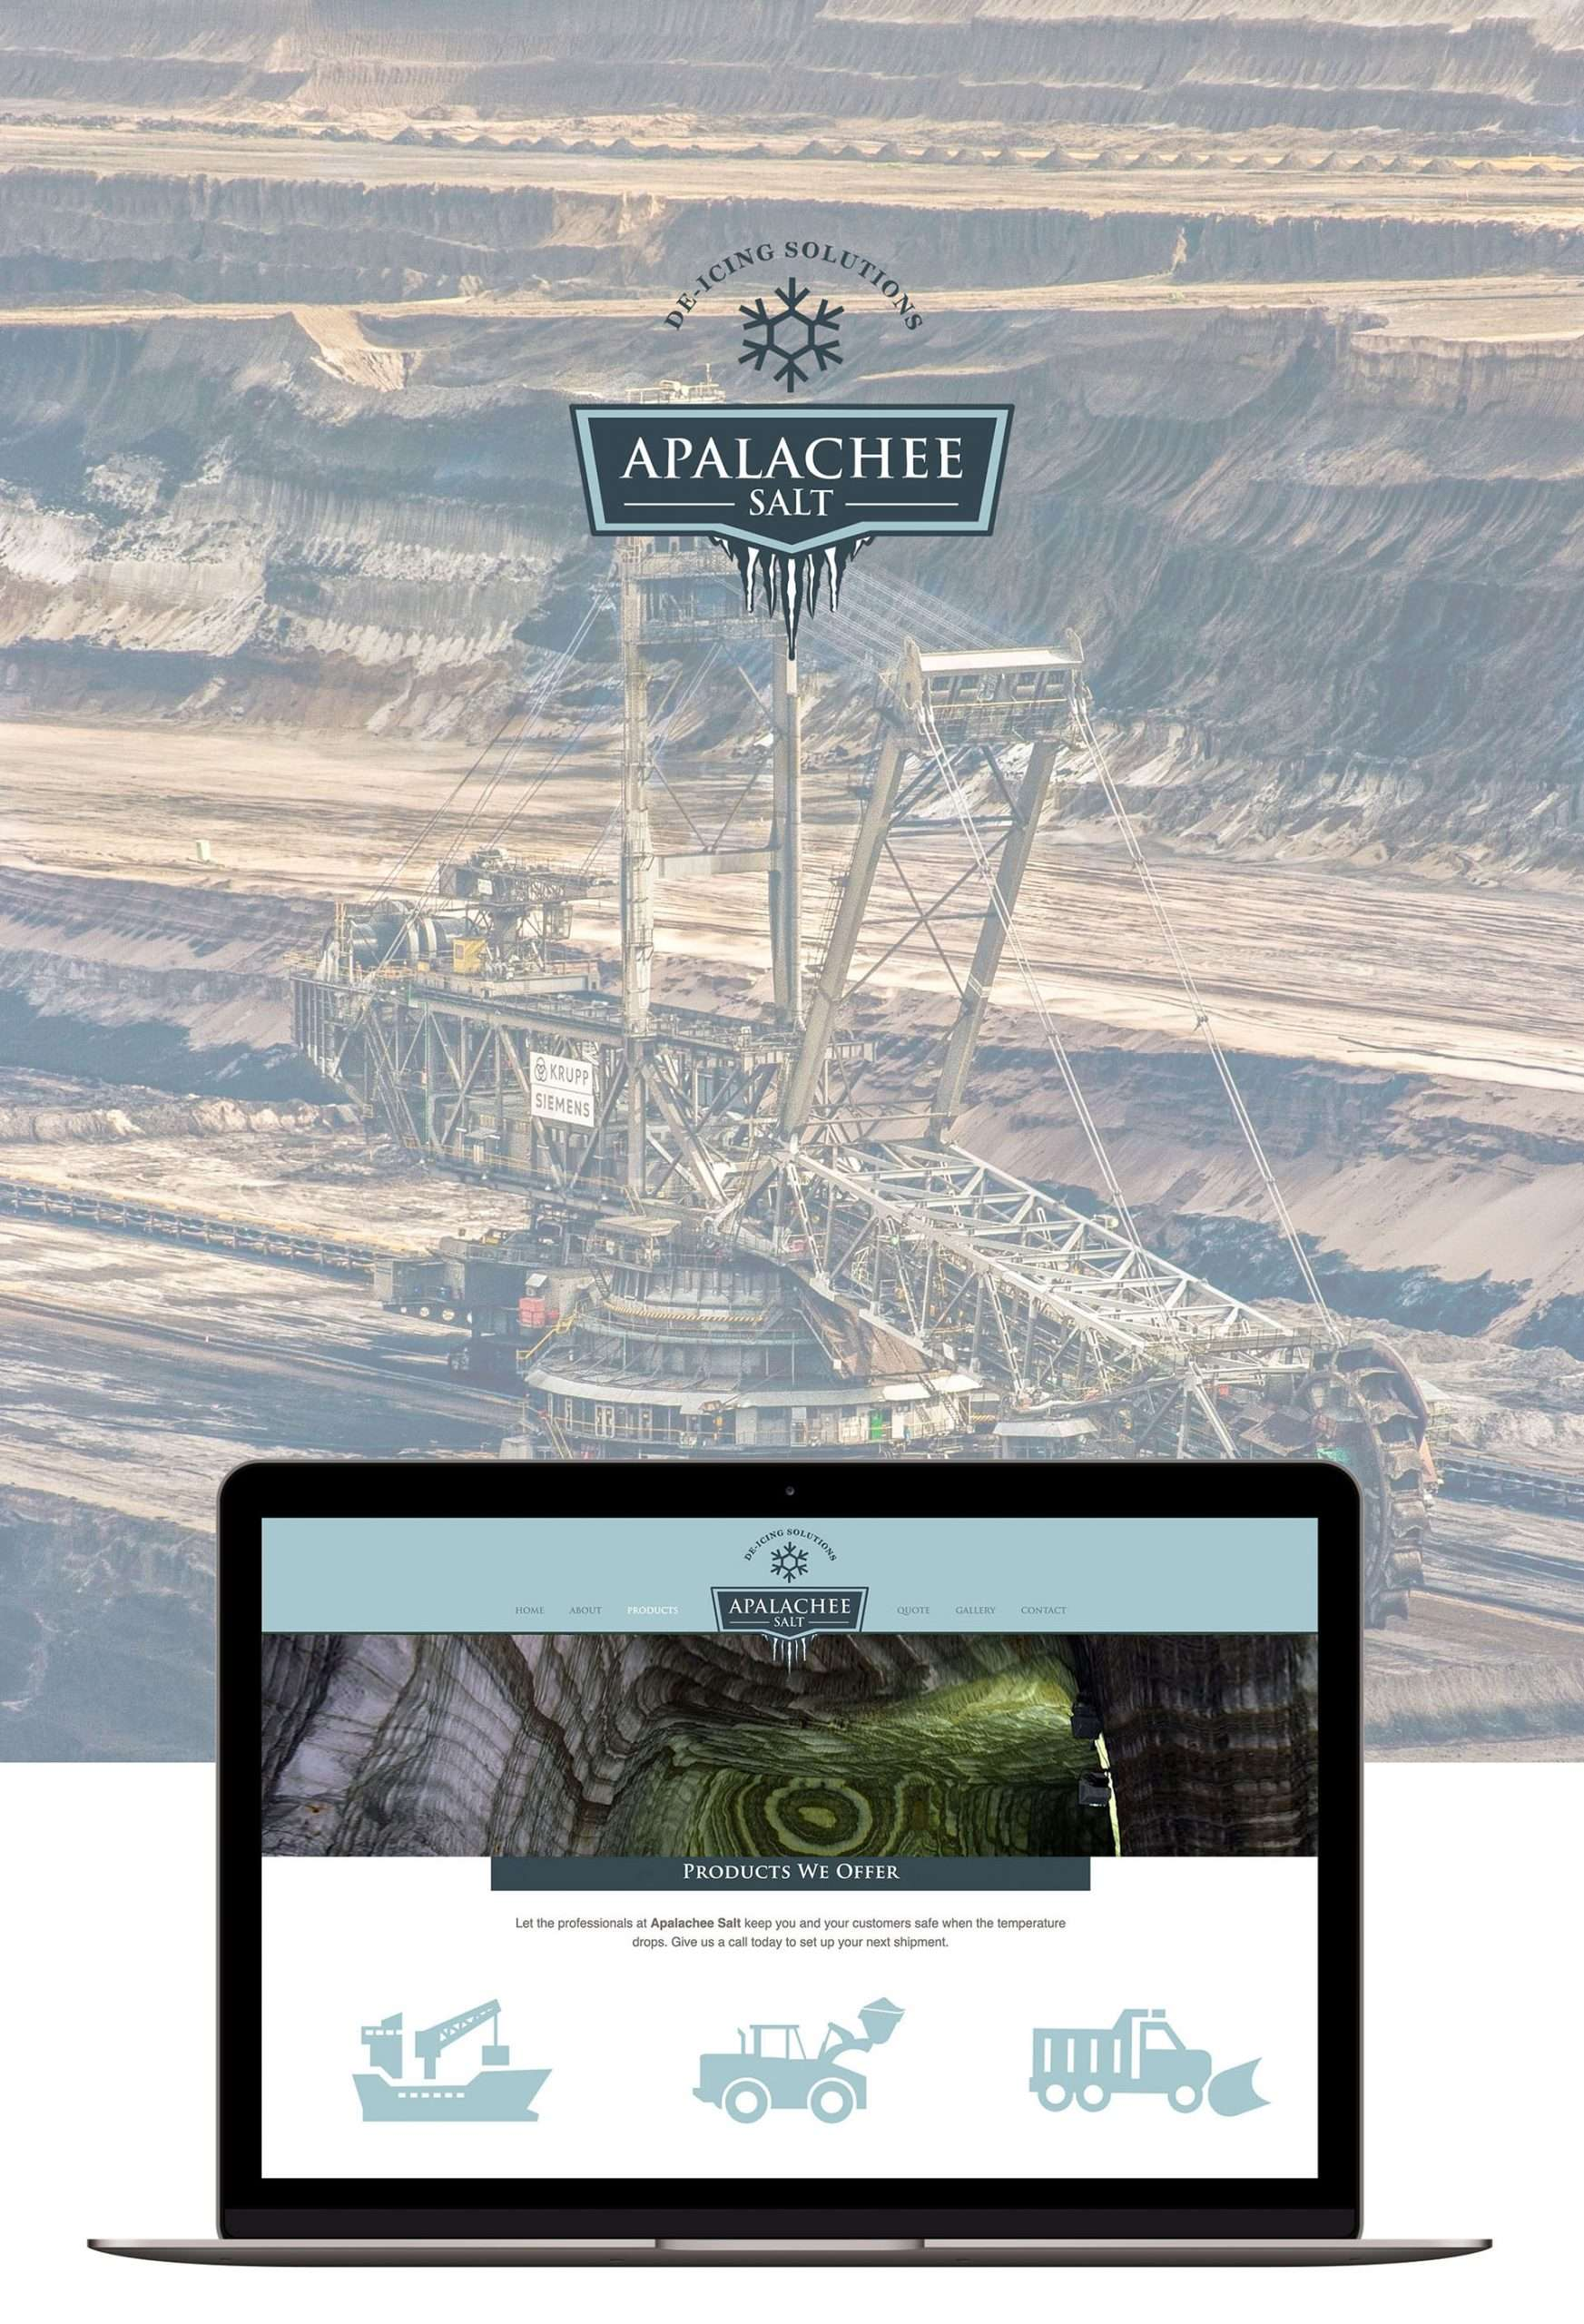 De-Icing website design for Apalachee Salt located in Rochester, NY.